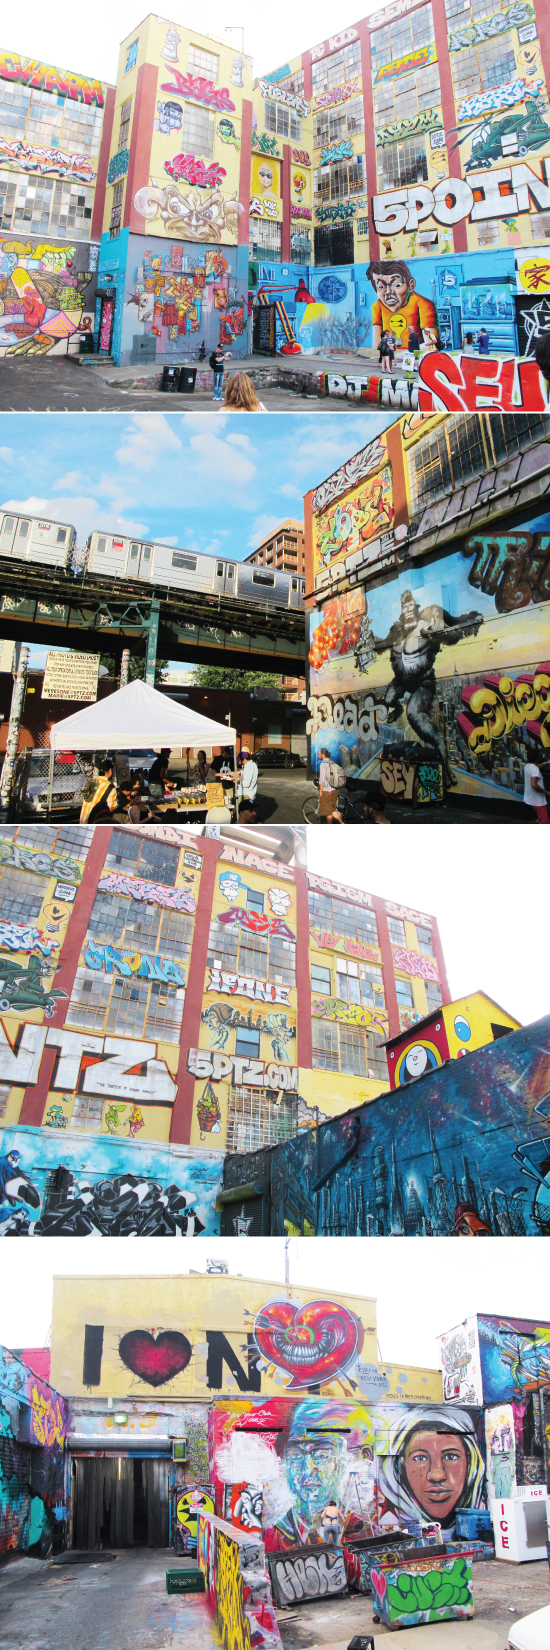 5pointz-queens-long-island-grafite-arte-art-ny-new-york-nyc-exposicao-moma-ps1-como-chegar-dica-viagem-blog-staring